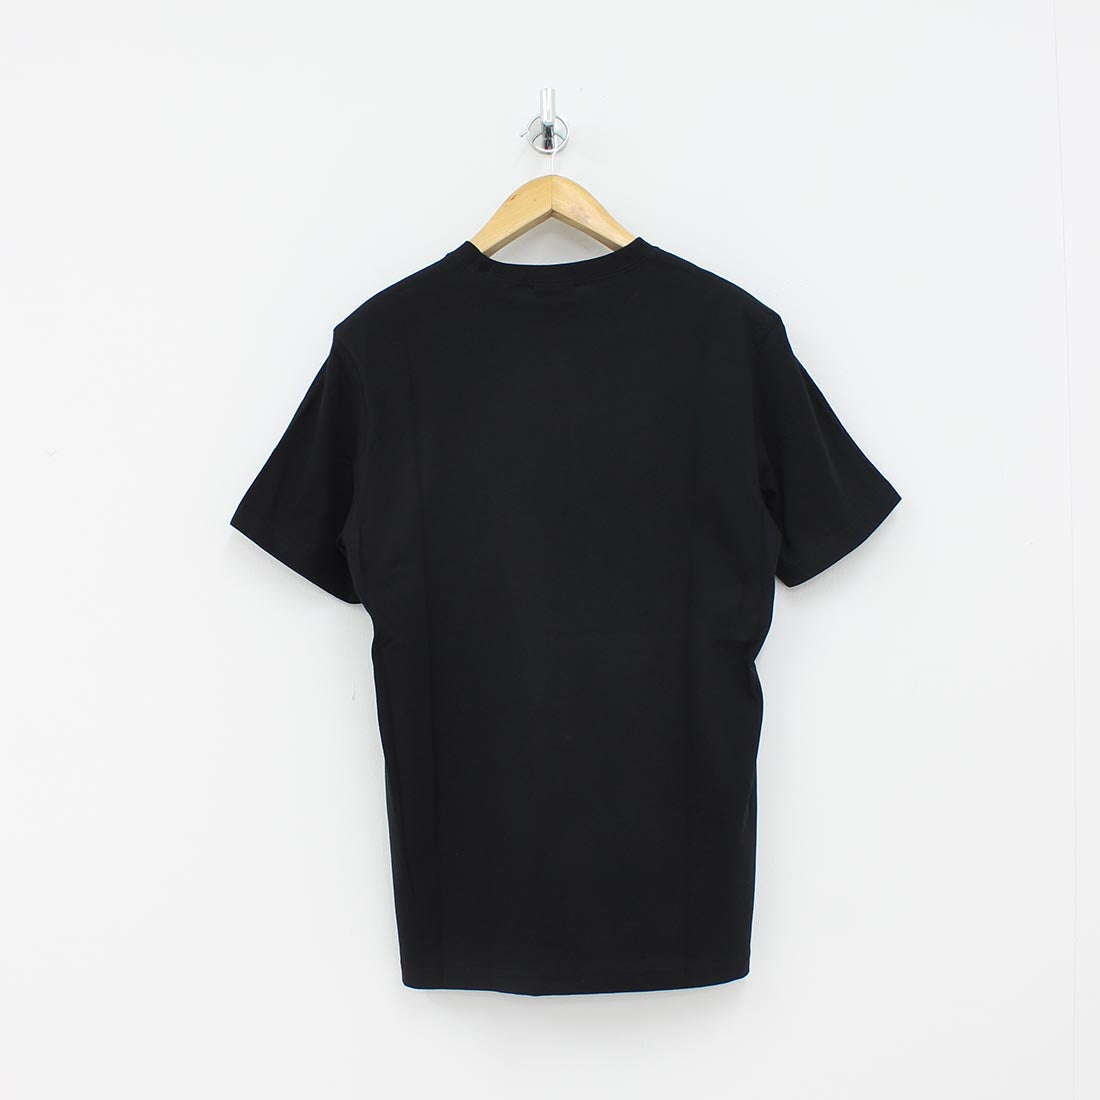 Paul Smith PS 72 Stitch Zebra T-Shirt Black